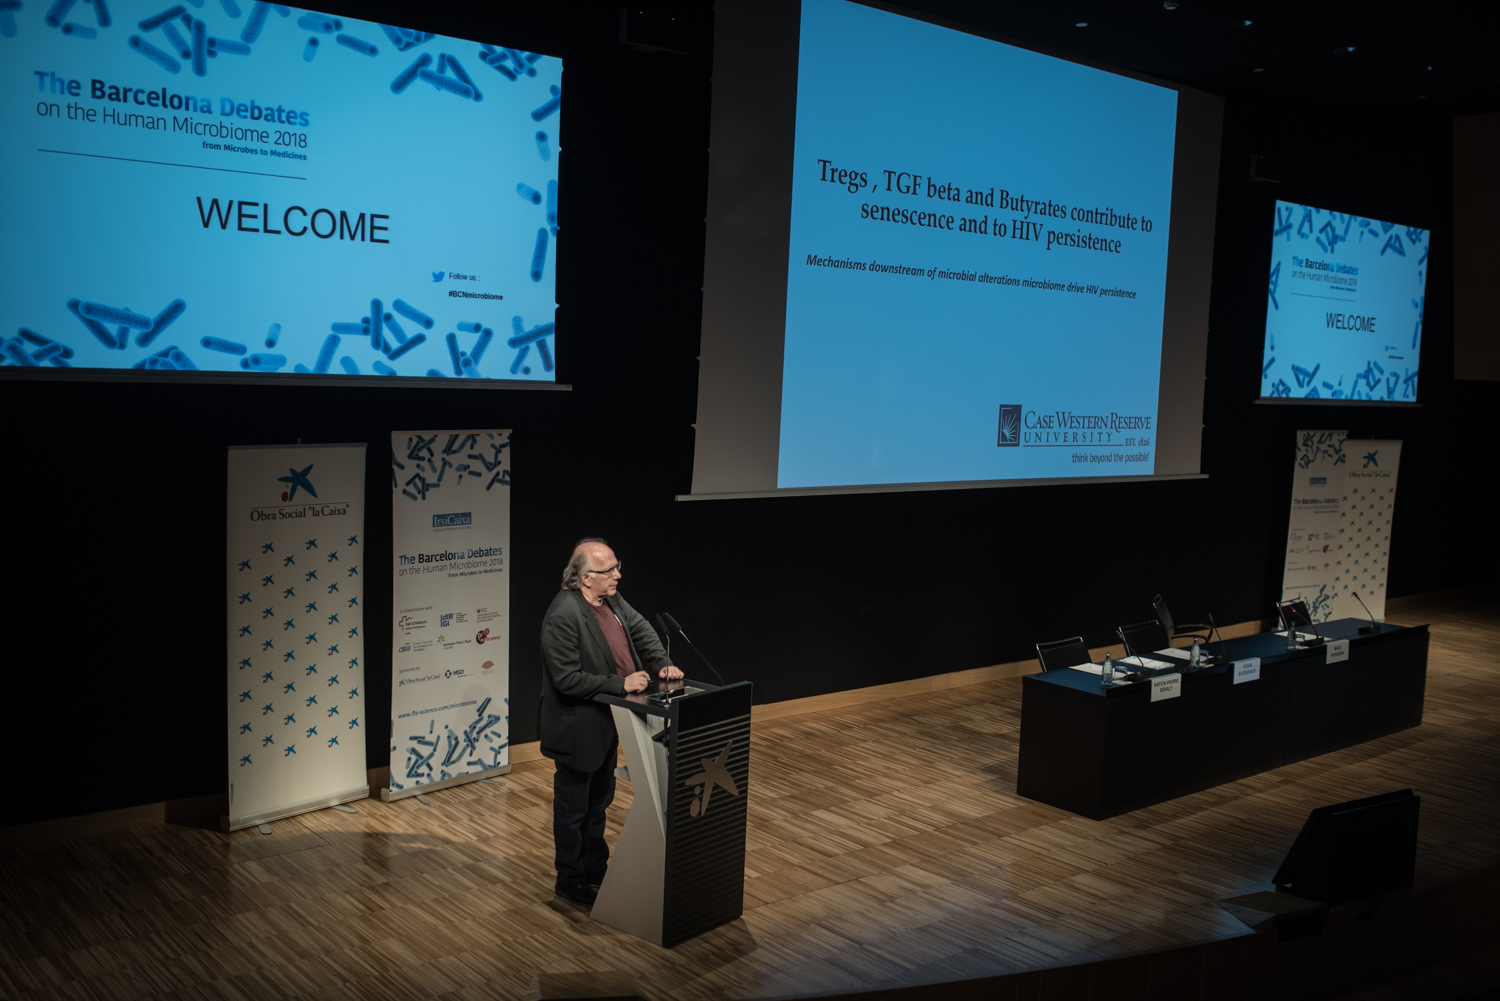 Rafick-Pierre Sékaly at The Barcelona Debates on the Human Microbiome 2018